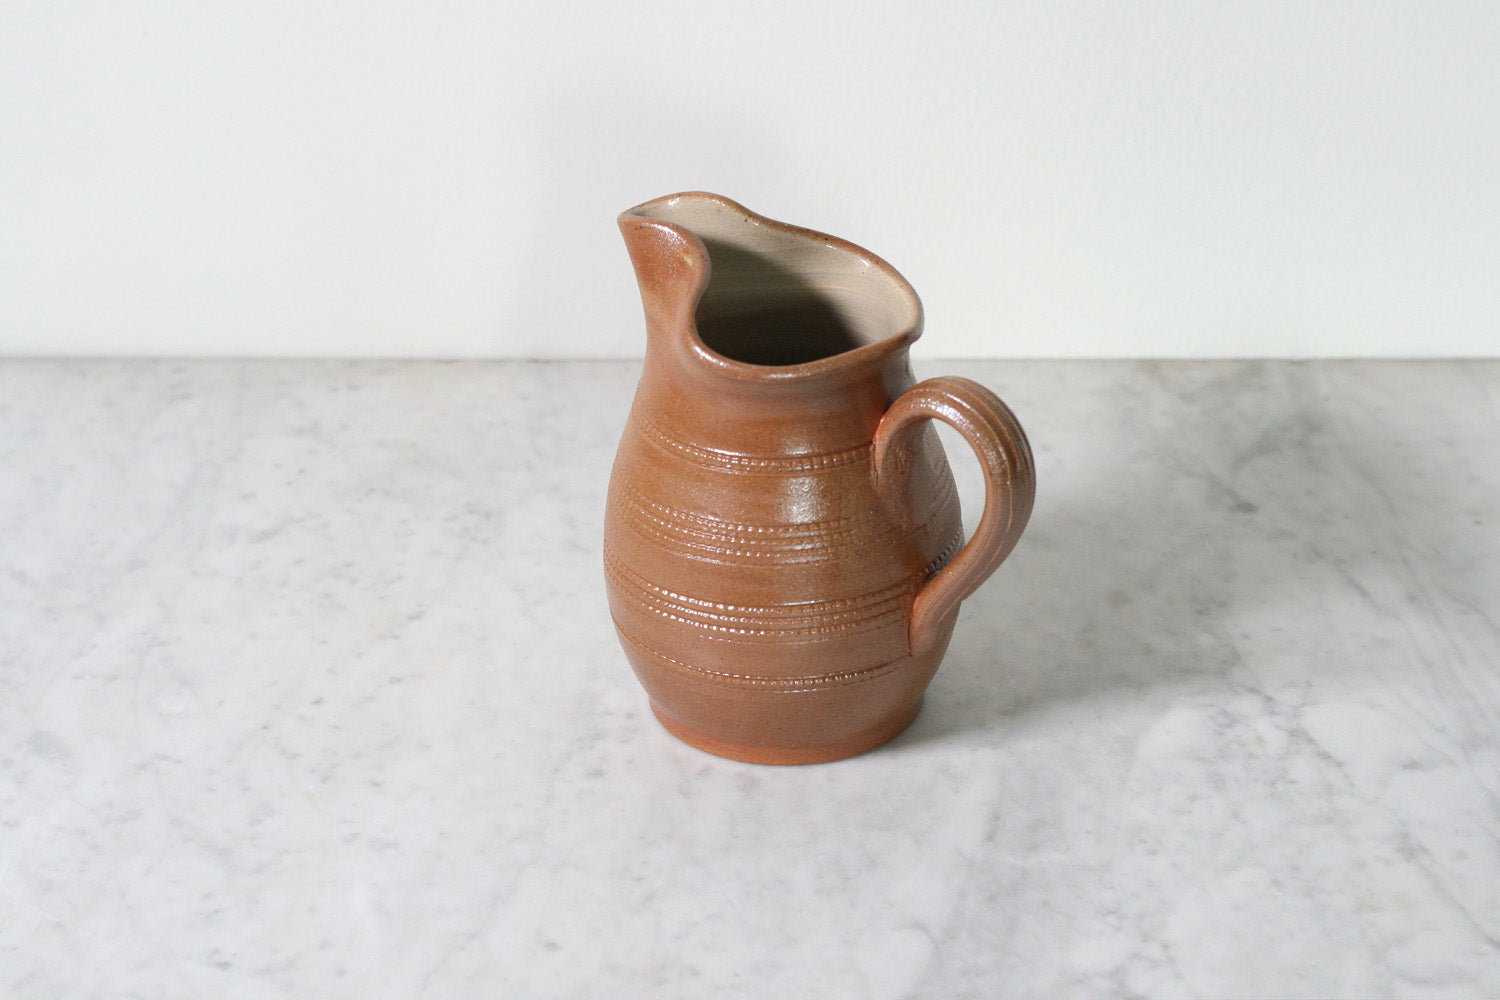 Poterie Renault French Stoneware Big Spout Pitcher